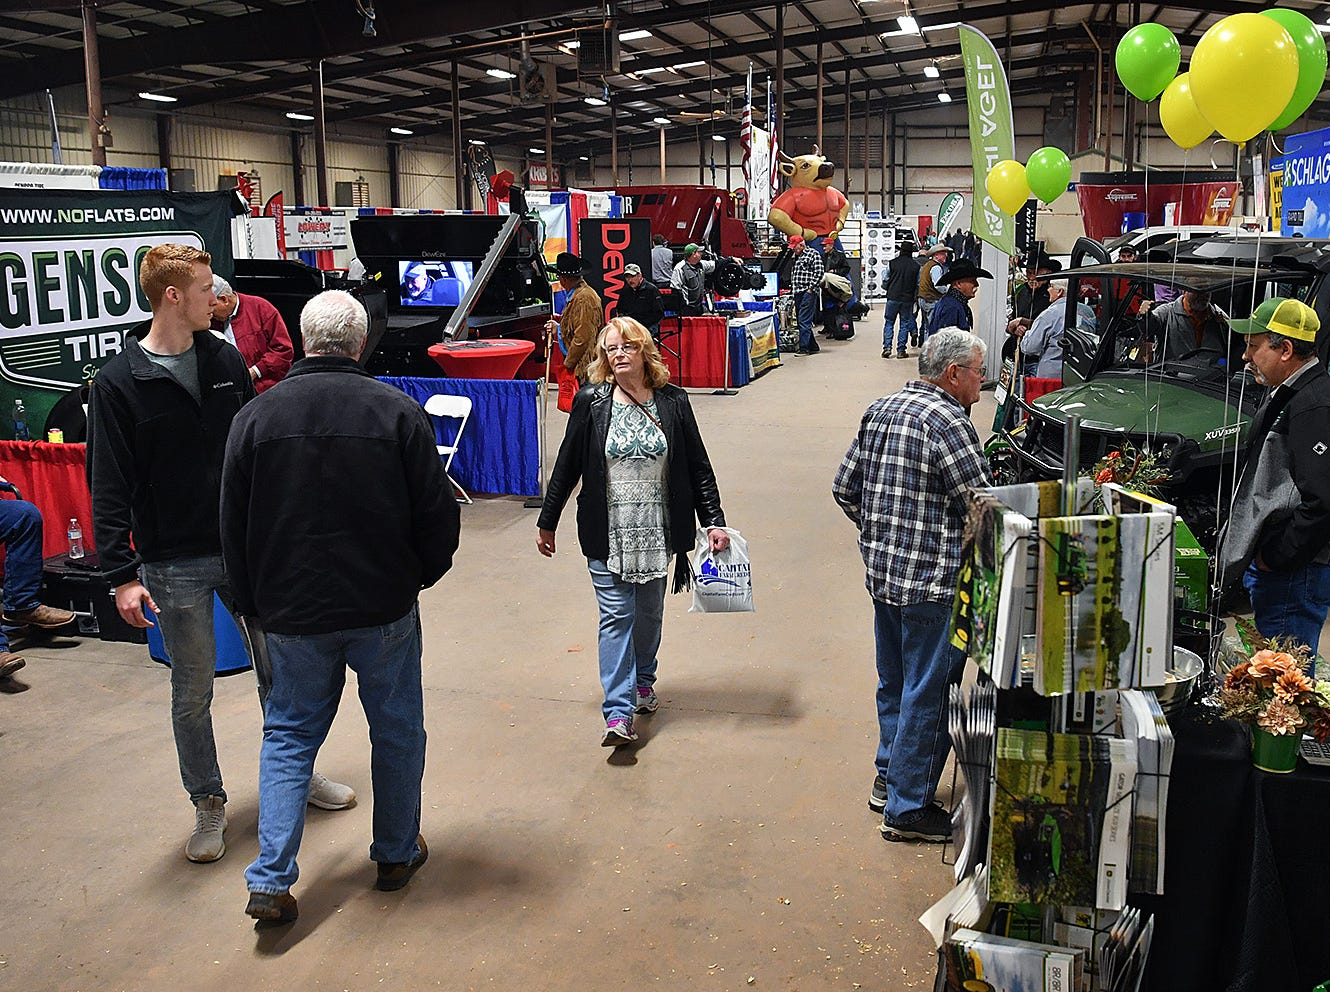 The Wichita Falls Ranch and Farm Expo at the Bridwell Ag Center features a wide variety of vendors with products and services for agriculture, hunting, ranching and rural living.